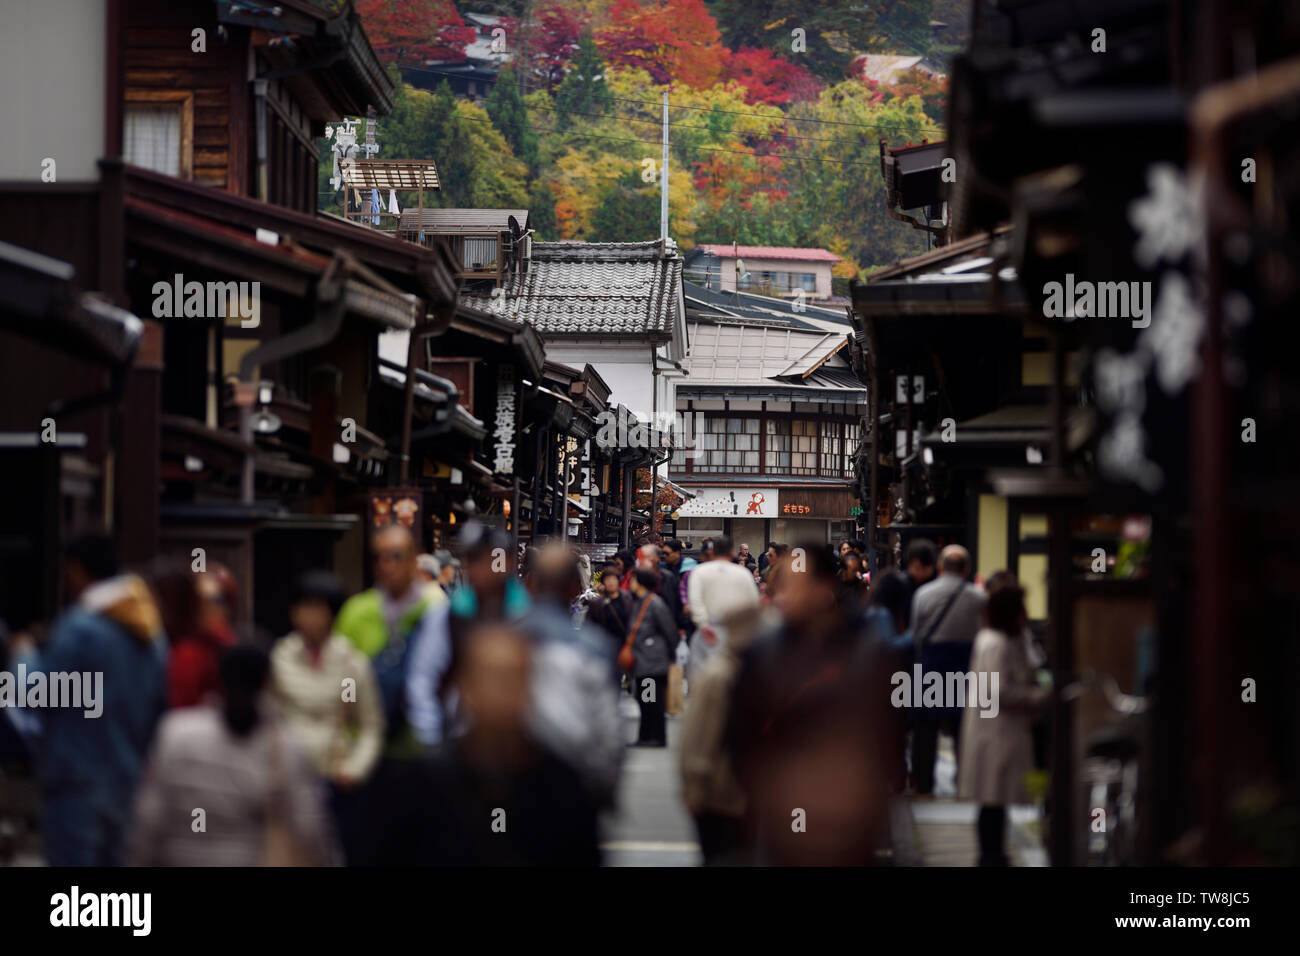 Shops and restaurants at Kami-Sannomachi, old town market street busy with tourists and visitors in autumn city scenery of Takayama, Gifu, Japan 2018. - Stock Image